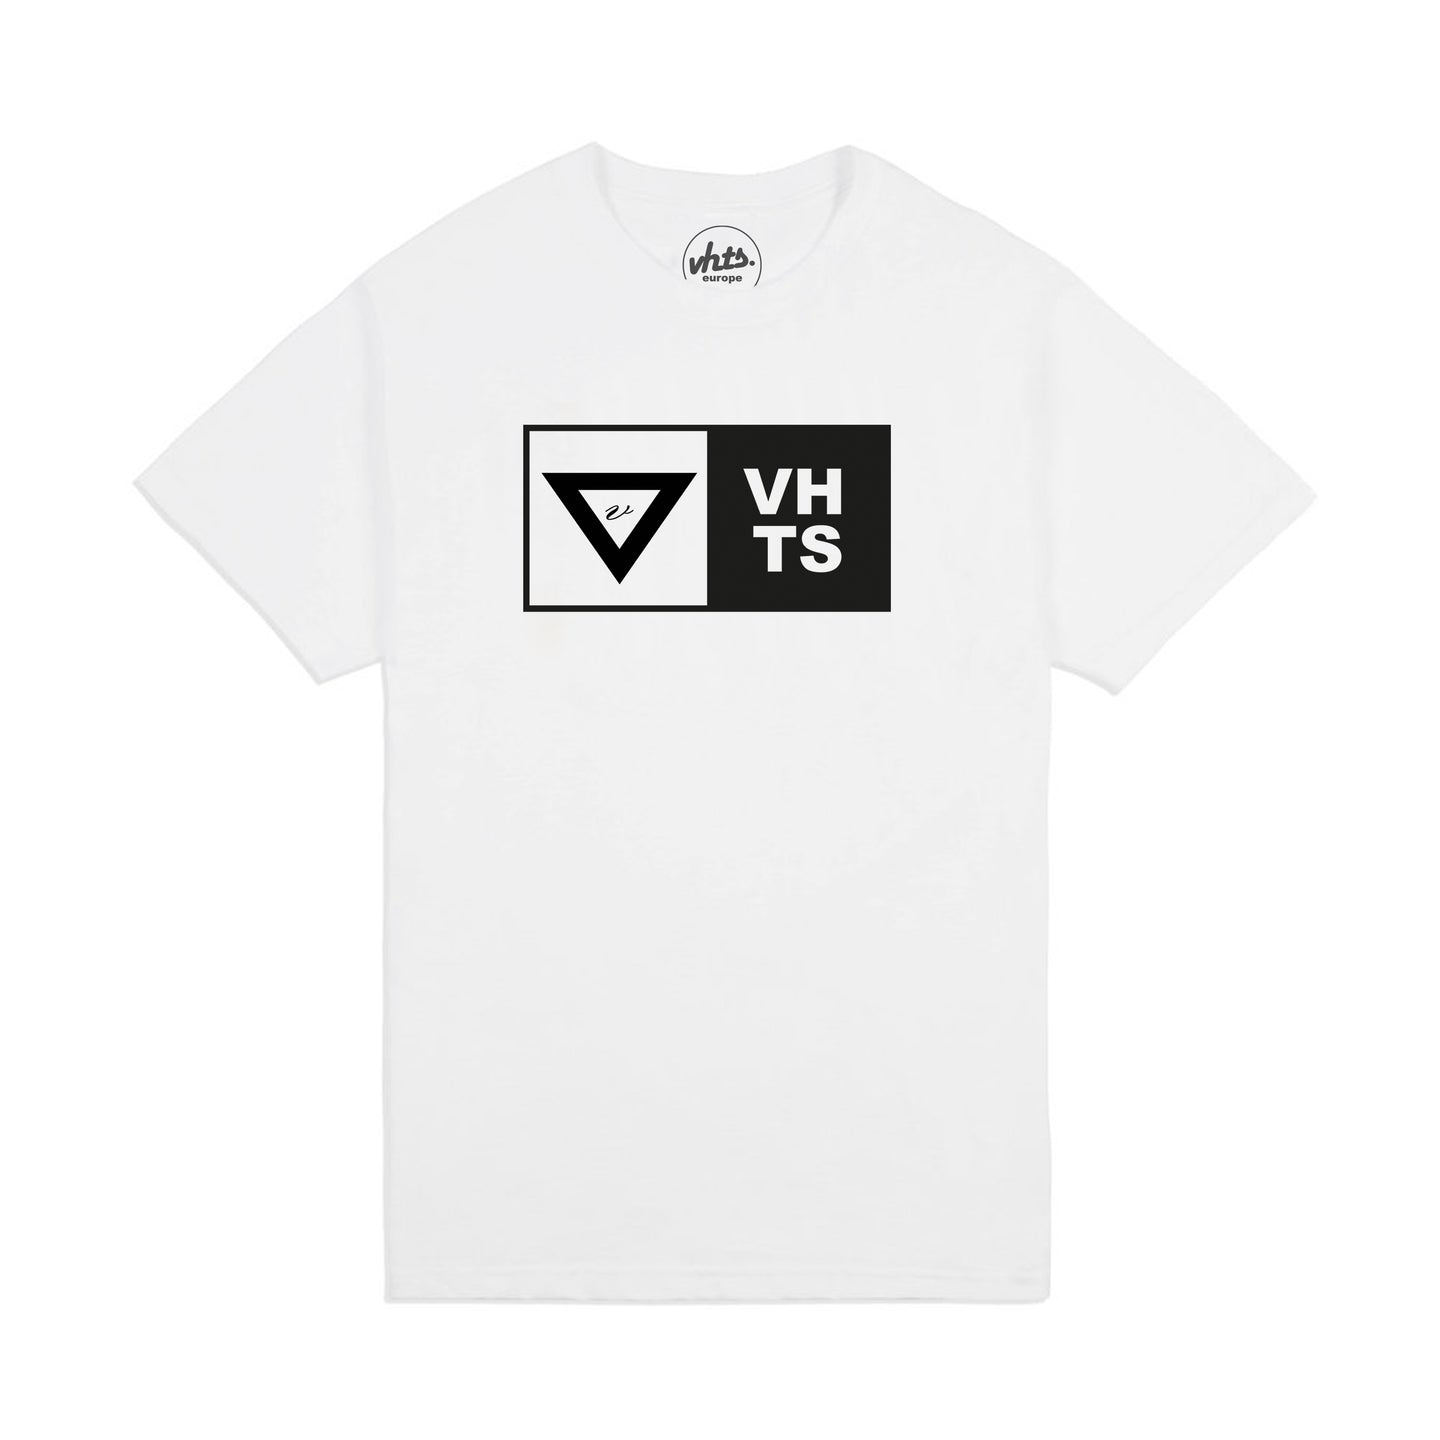 VHTS EU Bogo Shirt (limited edition only available until sold out) Limited Edition! Only available until sold out! 100 % Cotton Loose fit screen print boxlogo on the front screen print